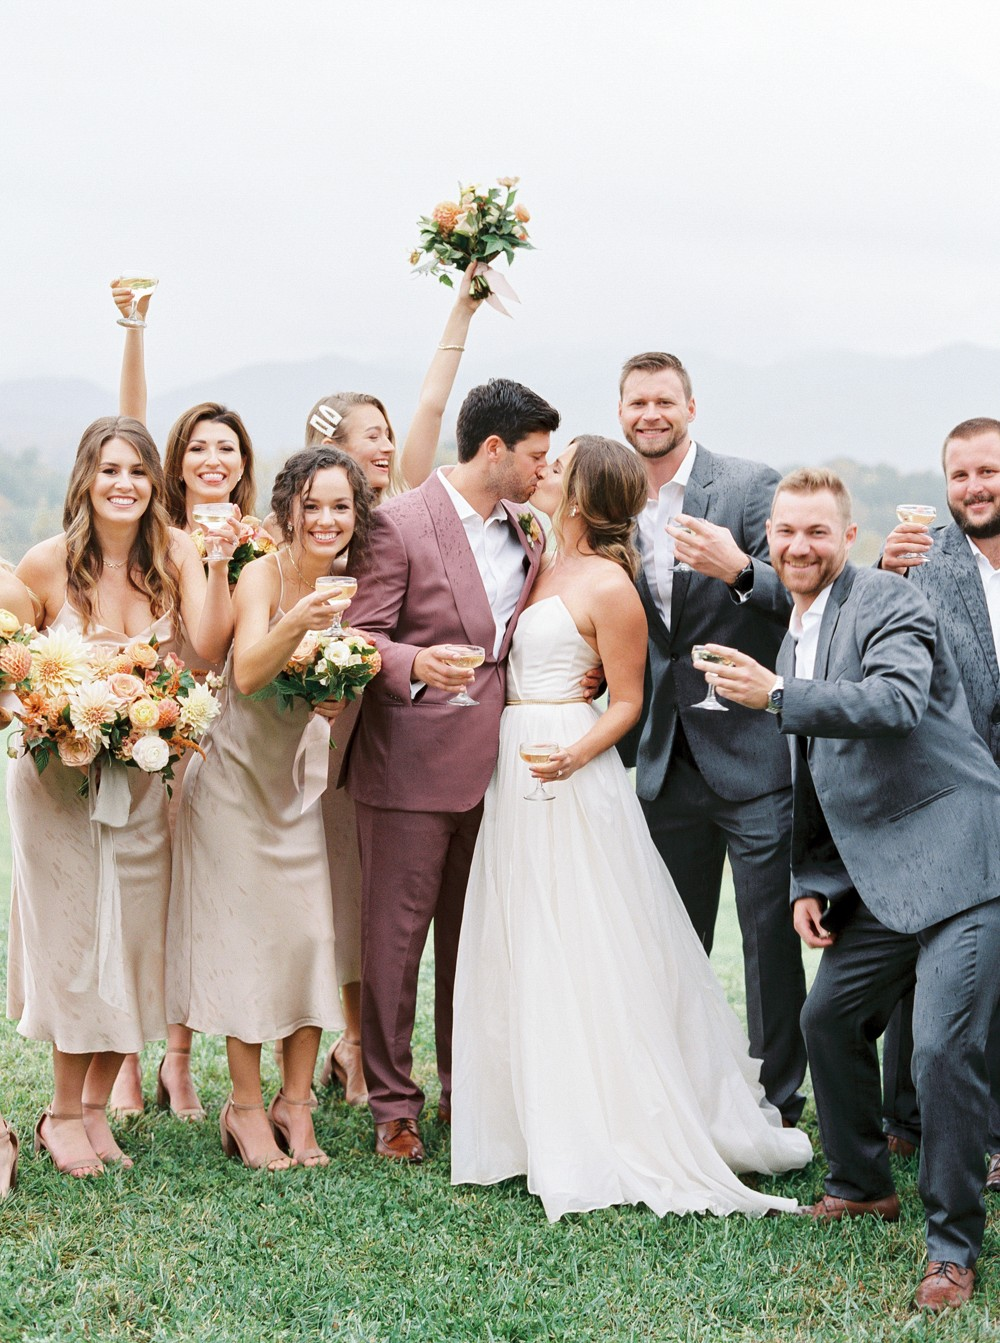 Gorgeous rainy fall wedding in the mountains of North Carolina